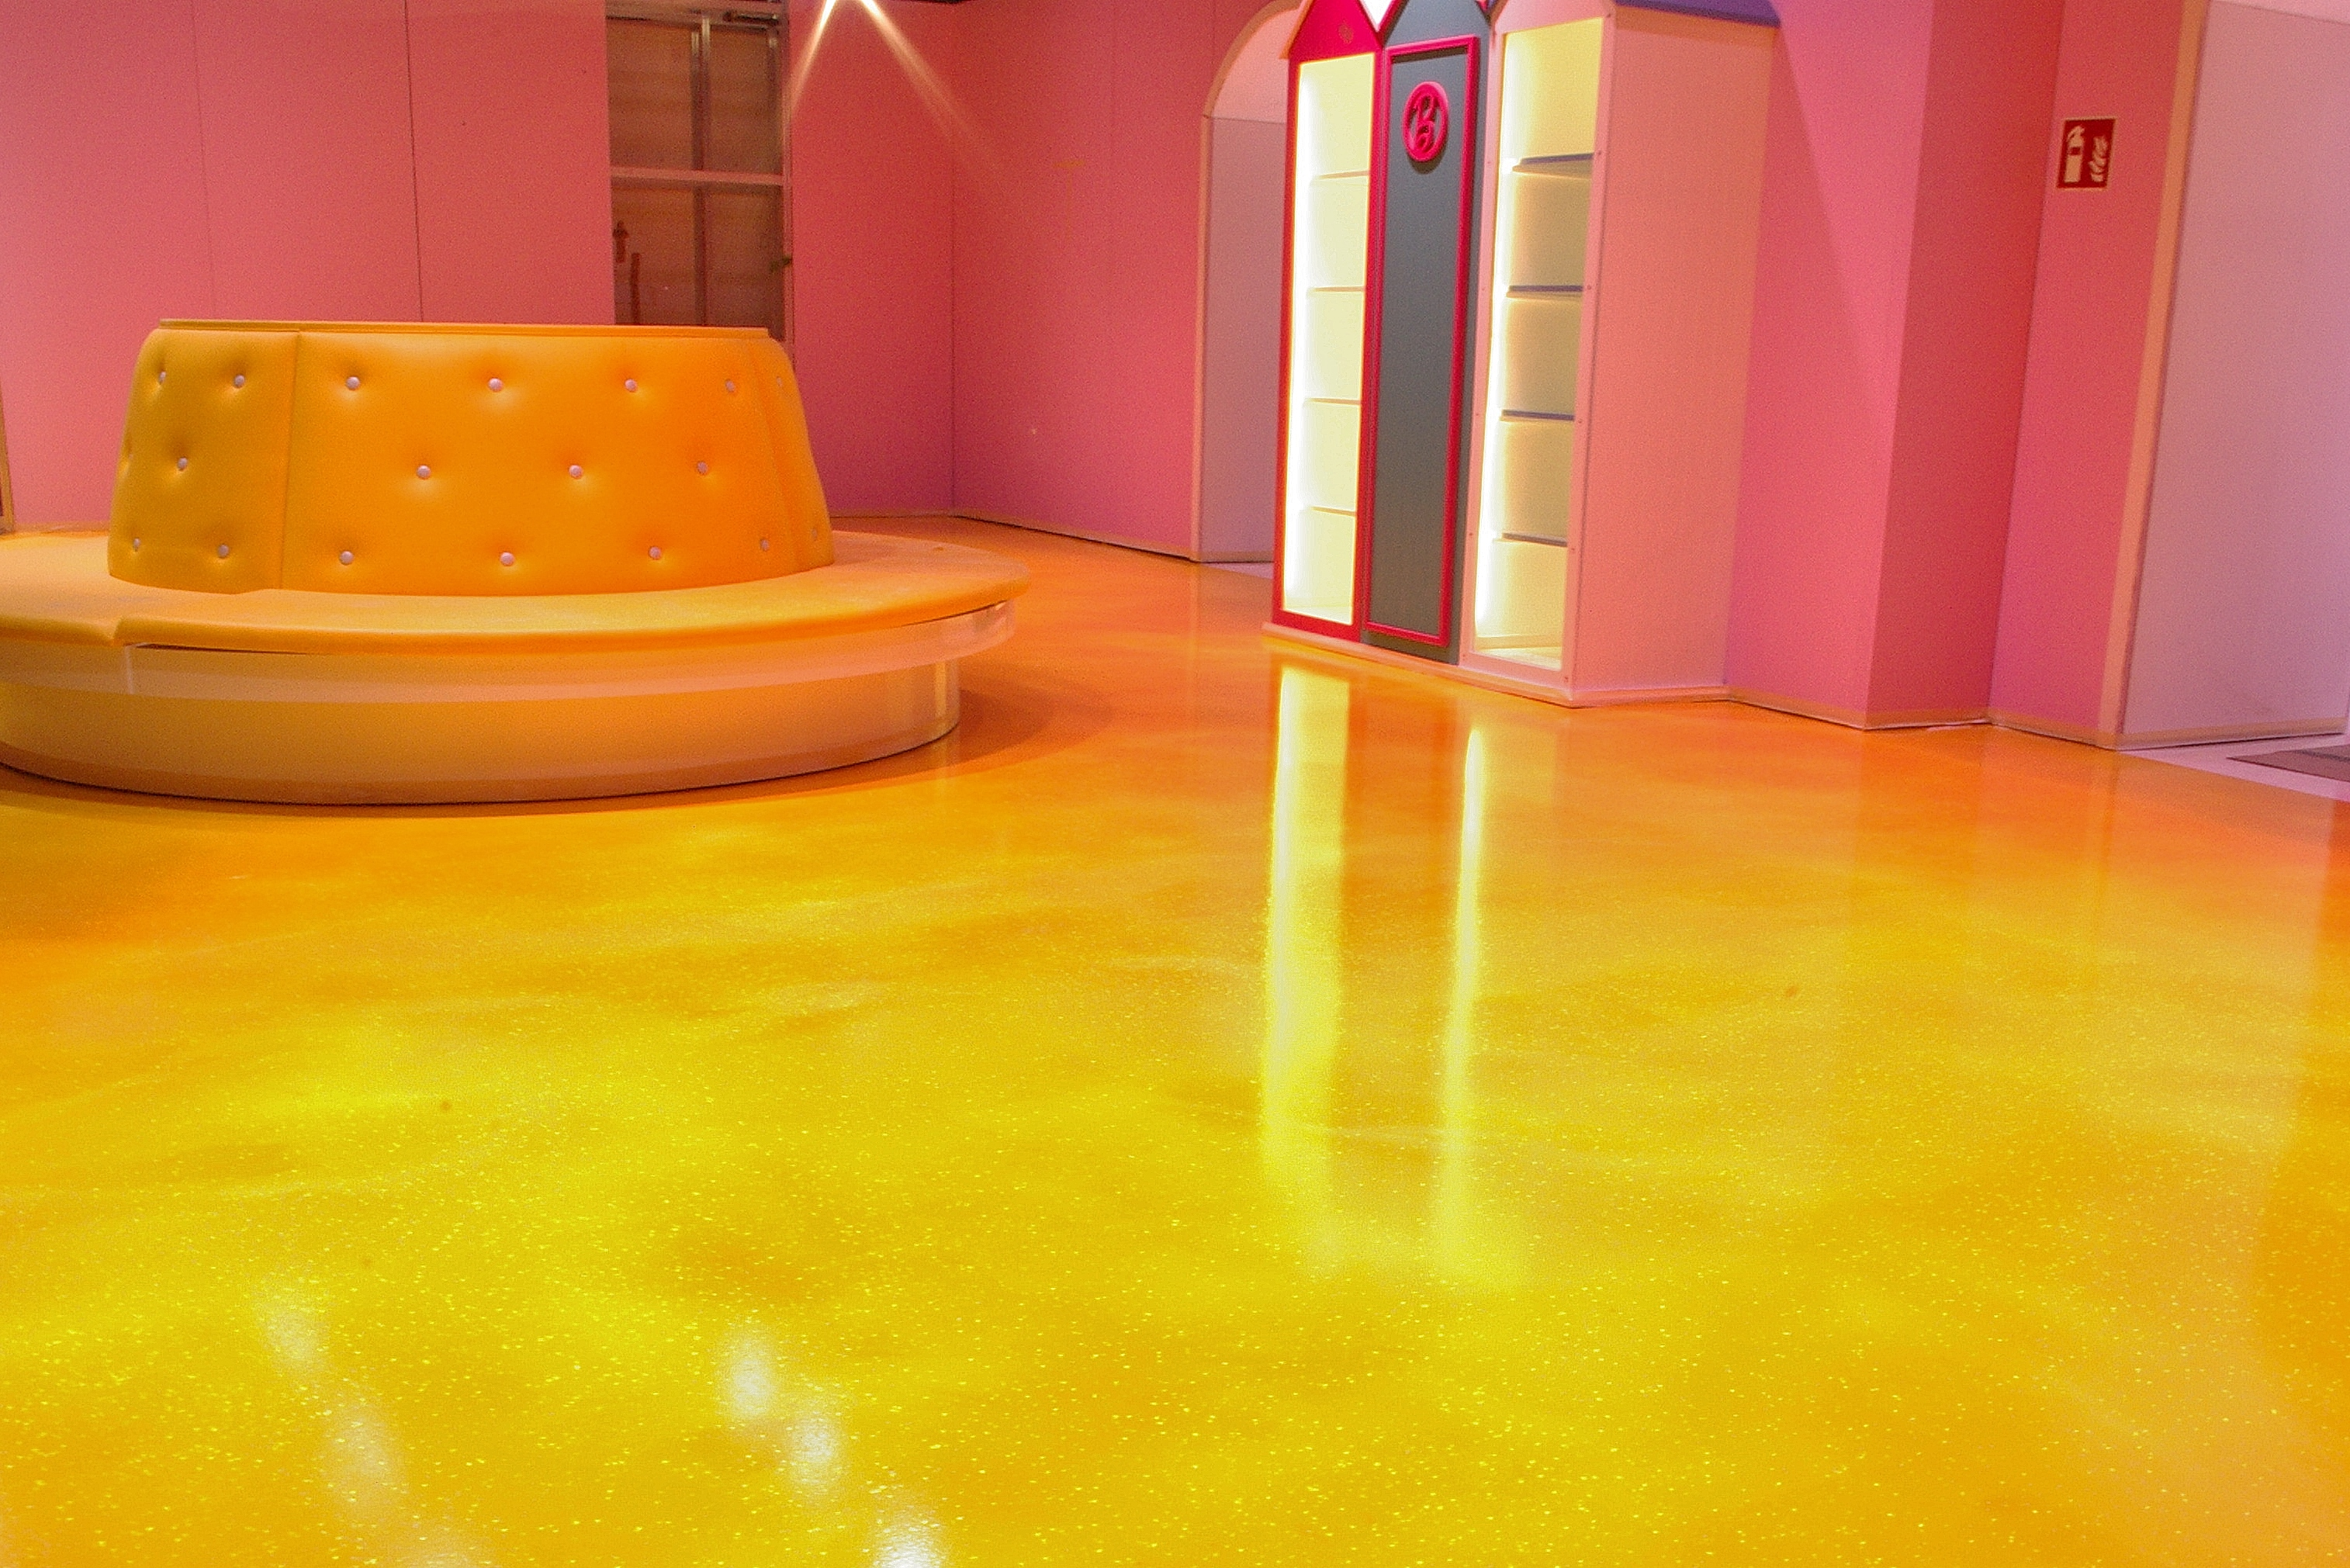 coatings proofing drybase ecs floor surface laitance previous for epoxy solution coating remove damp products floors